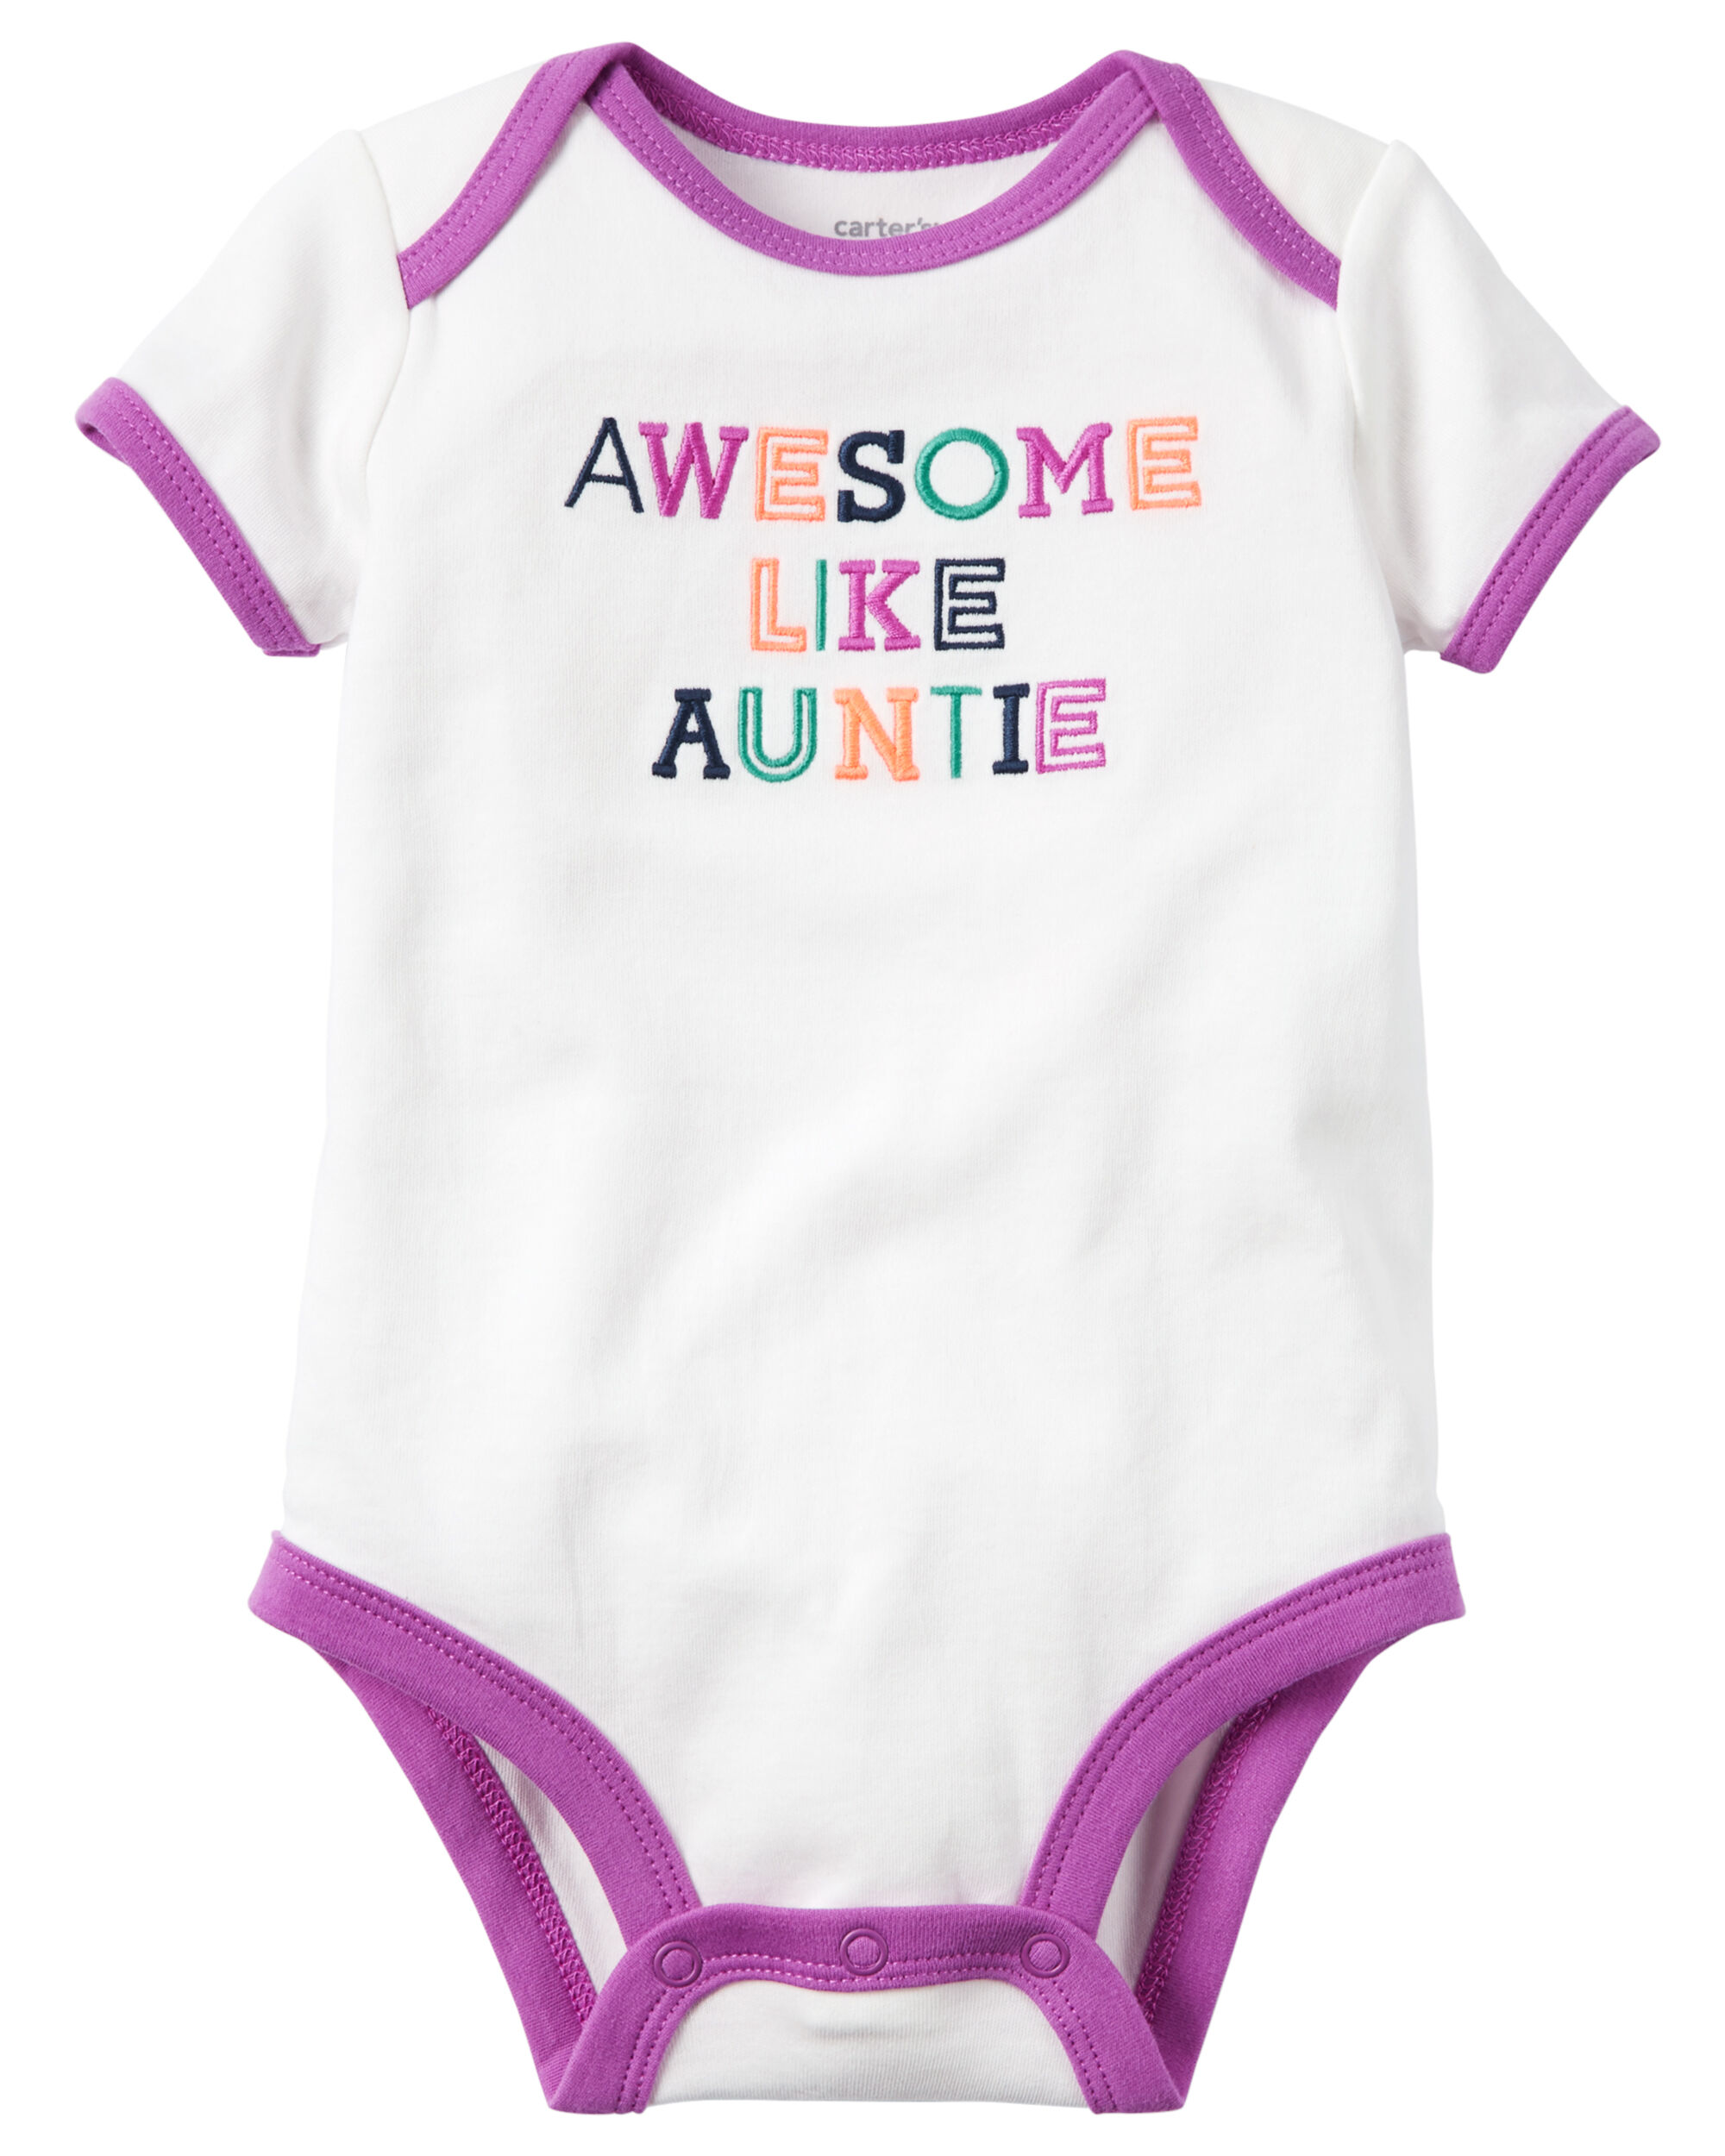 Awesome Like Auntie Collectible Bodysuit